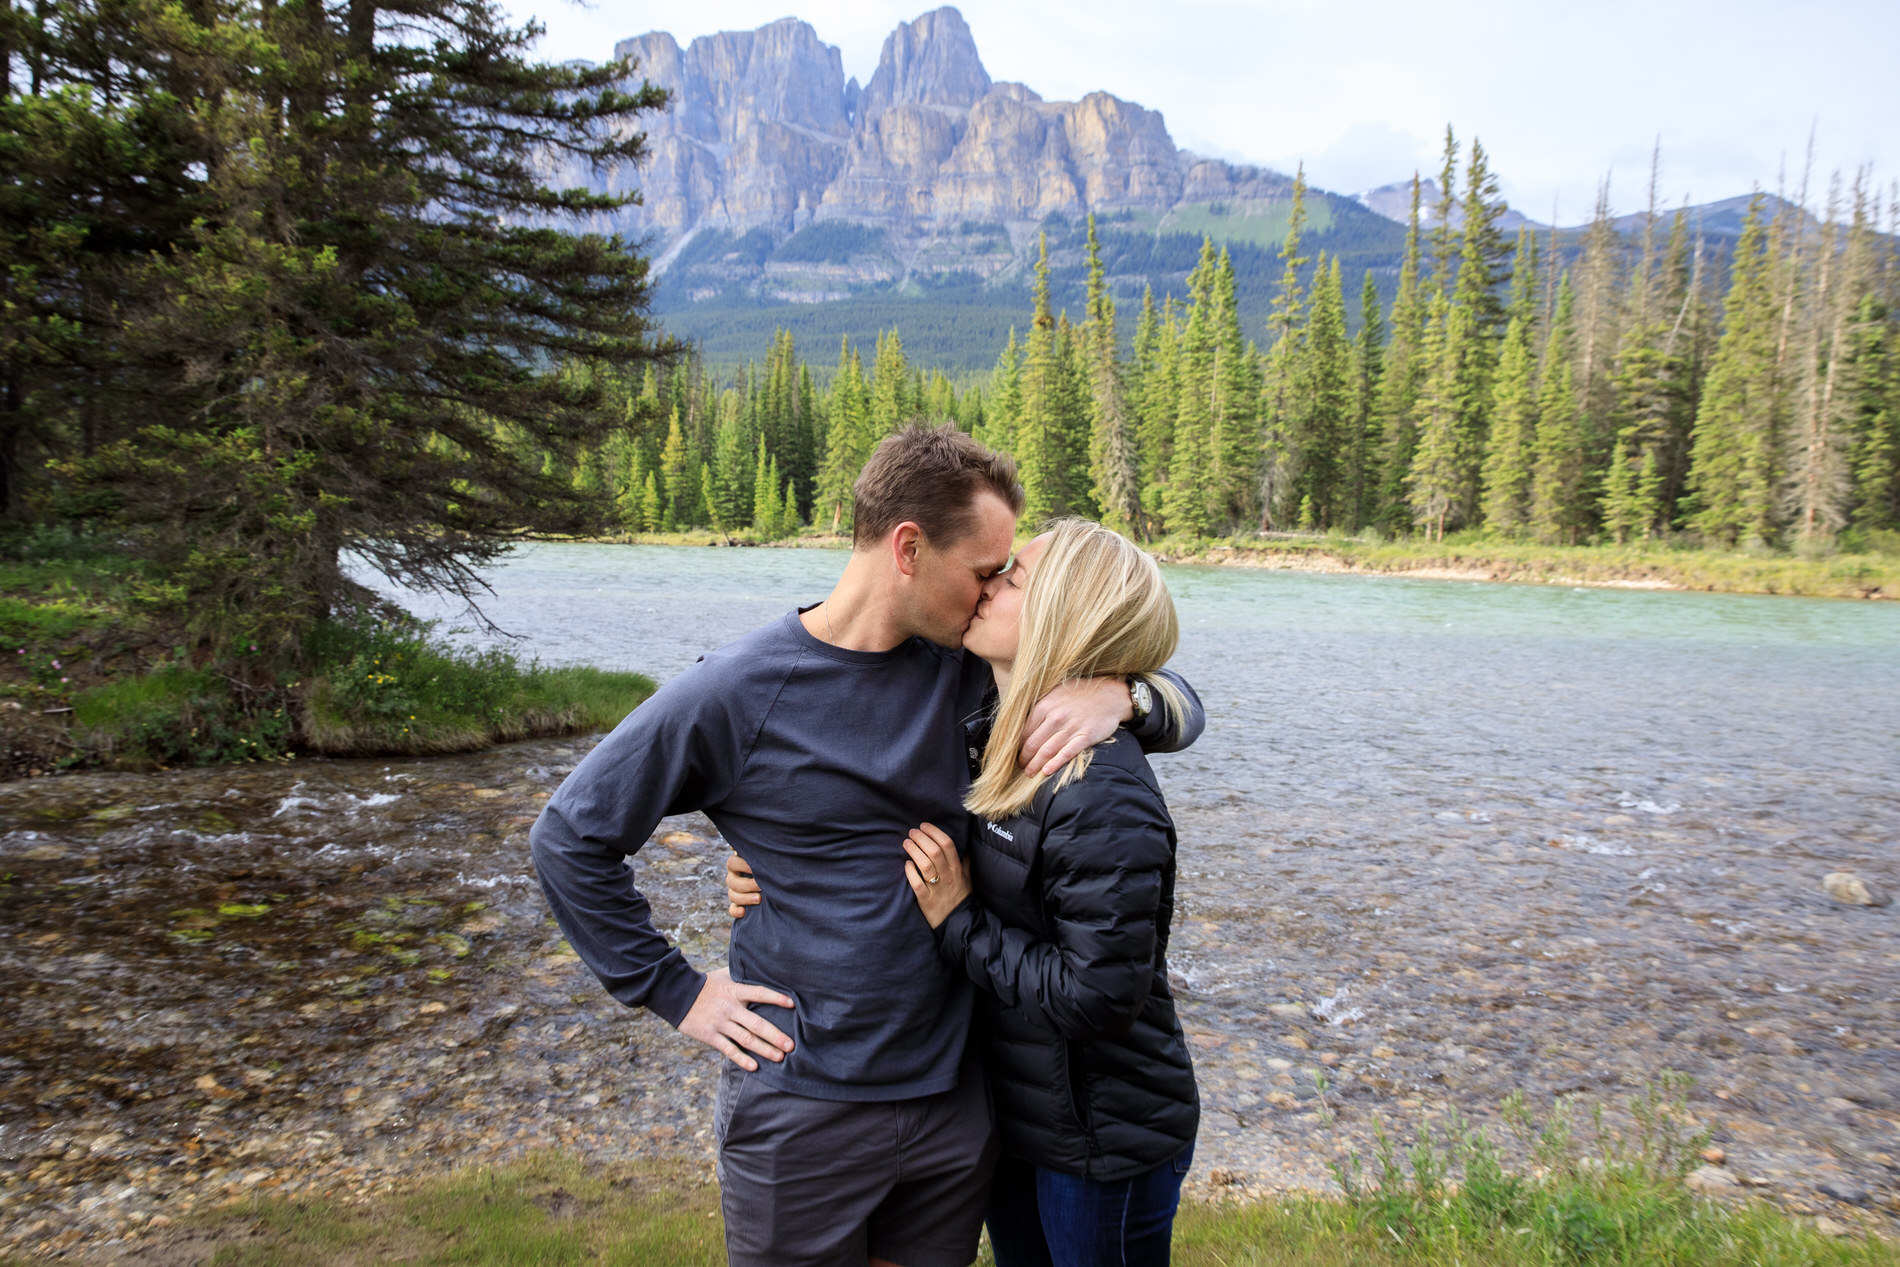 Couple gets engaged in a surprise proposal Banff National Park.